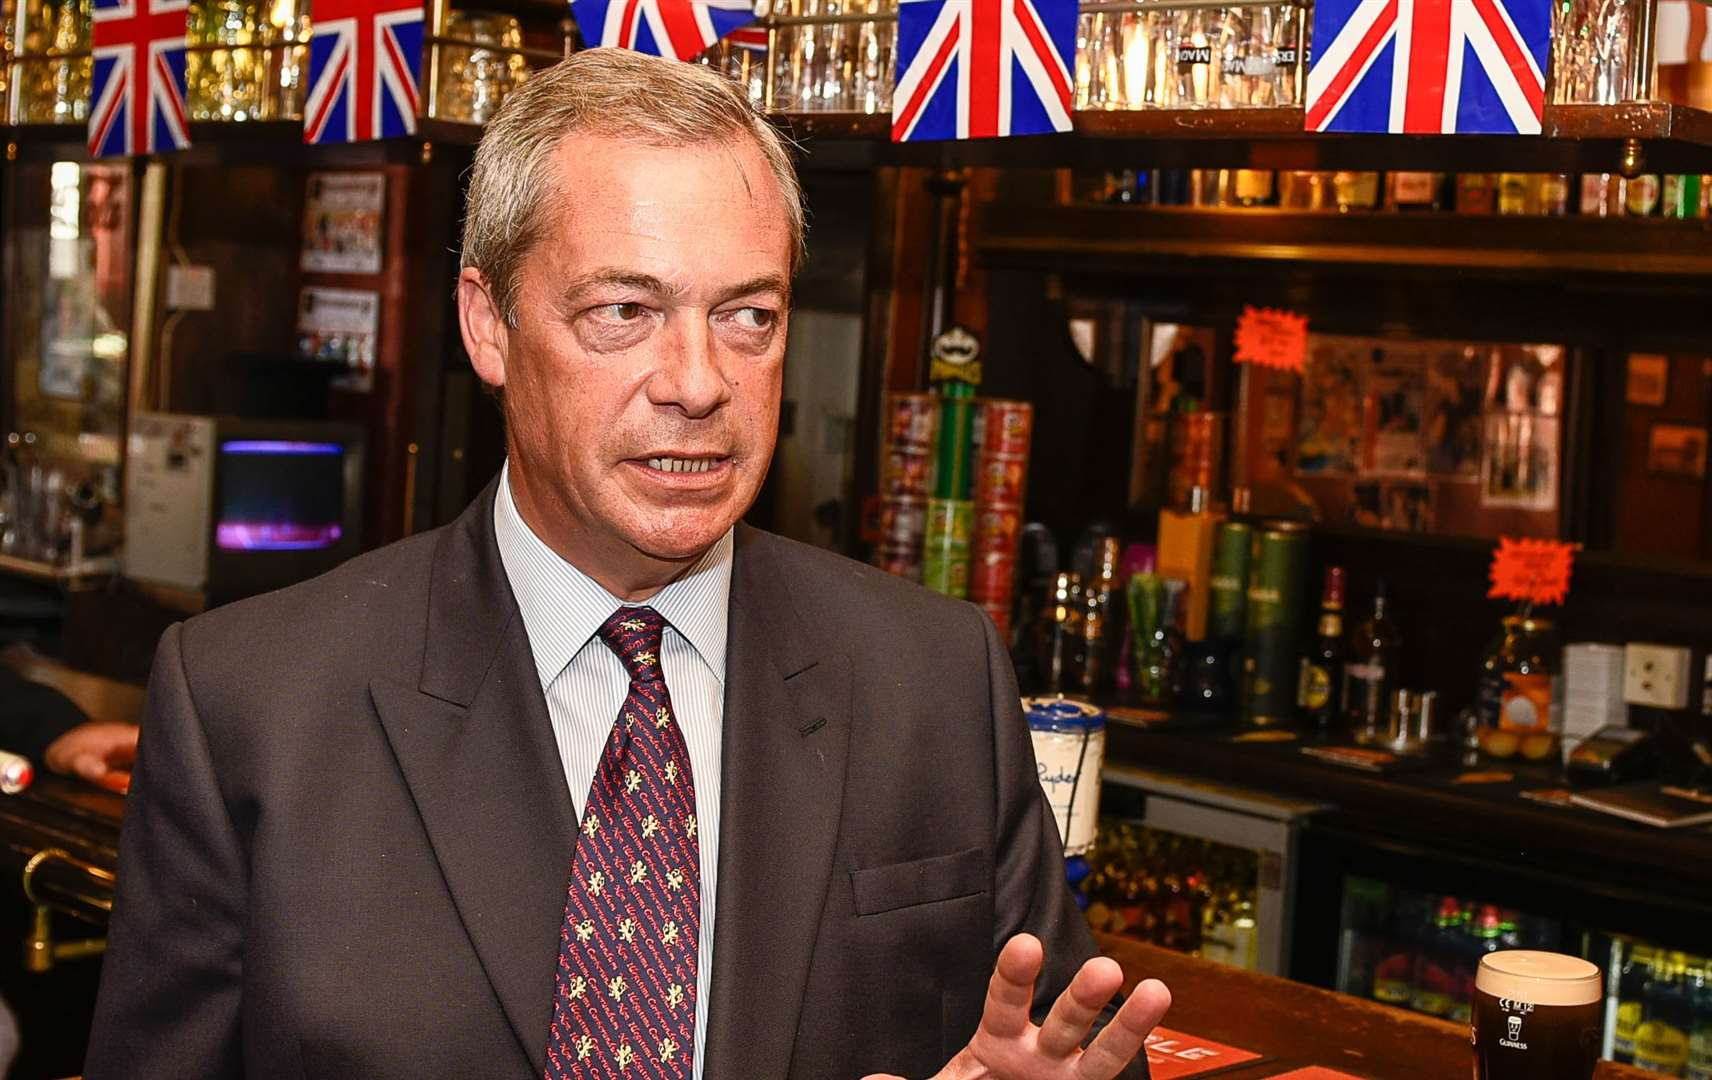 Pint-drinking politician Nigel Farage has been banned from his local pub. Picture: Alan Langley